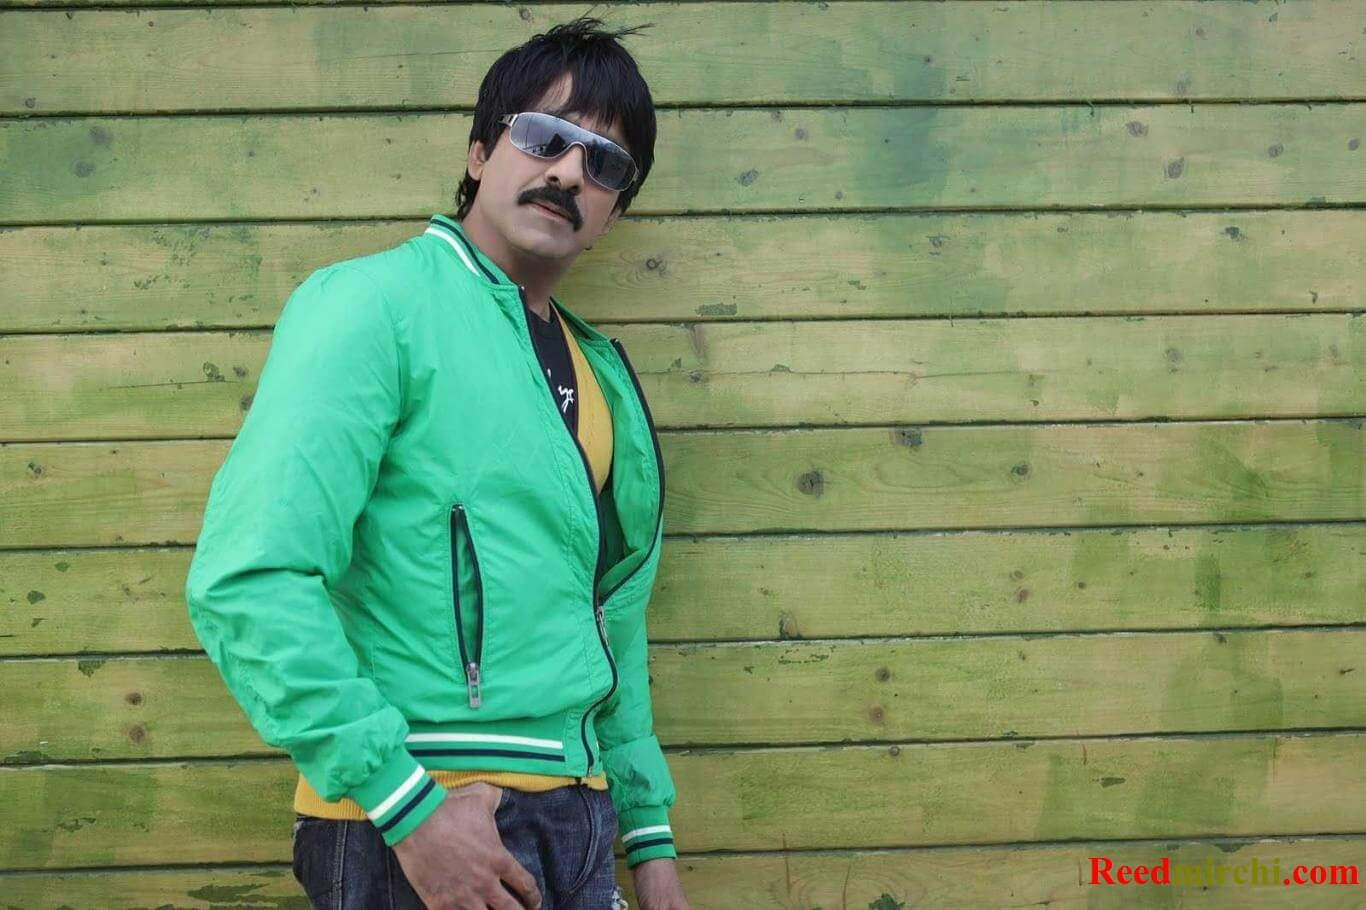 Ravi Teja Movie, Photos(images), Date Of Birth, Family, Brother, Height, Biography, Net Worth, Age, Wife, Details, Education, Instagram, Twitter, Wiki, Imdb, Facebook, Hairstyle, Youtube (20)